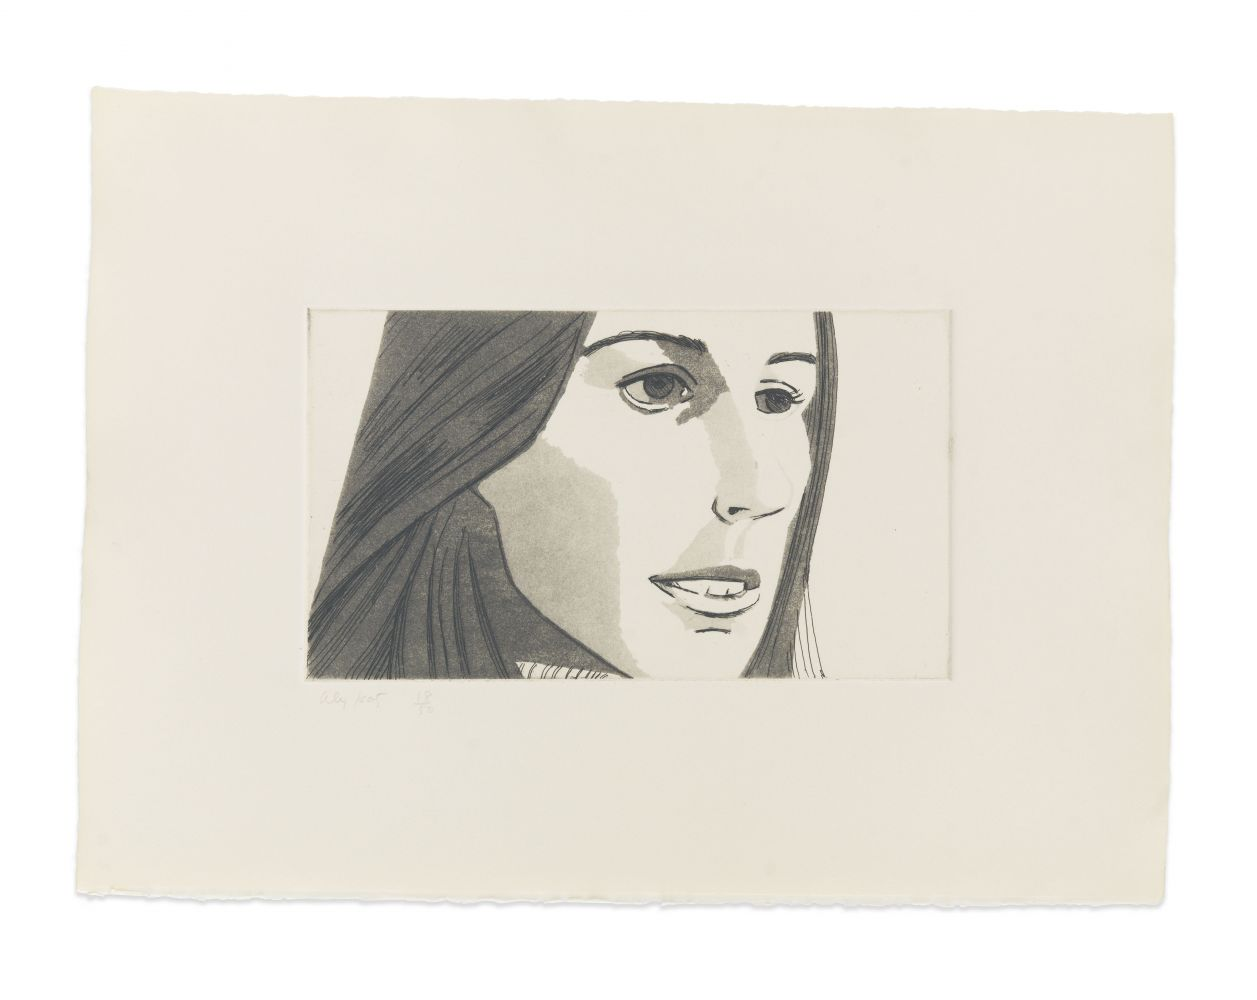 Aquatint by Alex Katz of a portrait of a woman at 3/4 view featuring her mouth slightly open and showing her top teeth